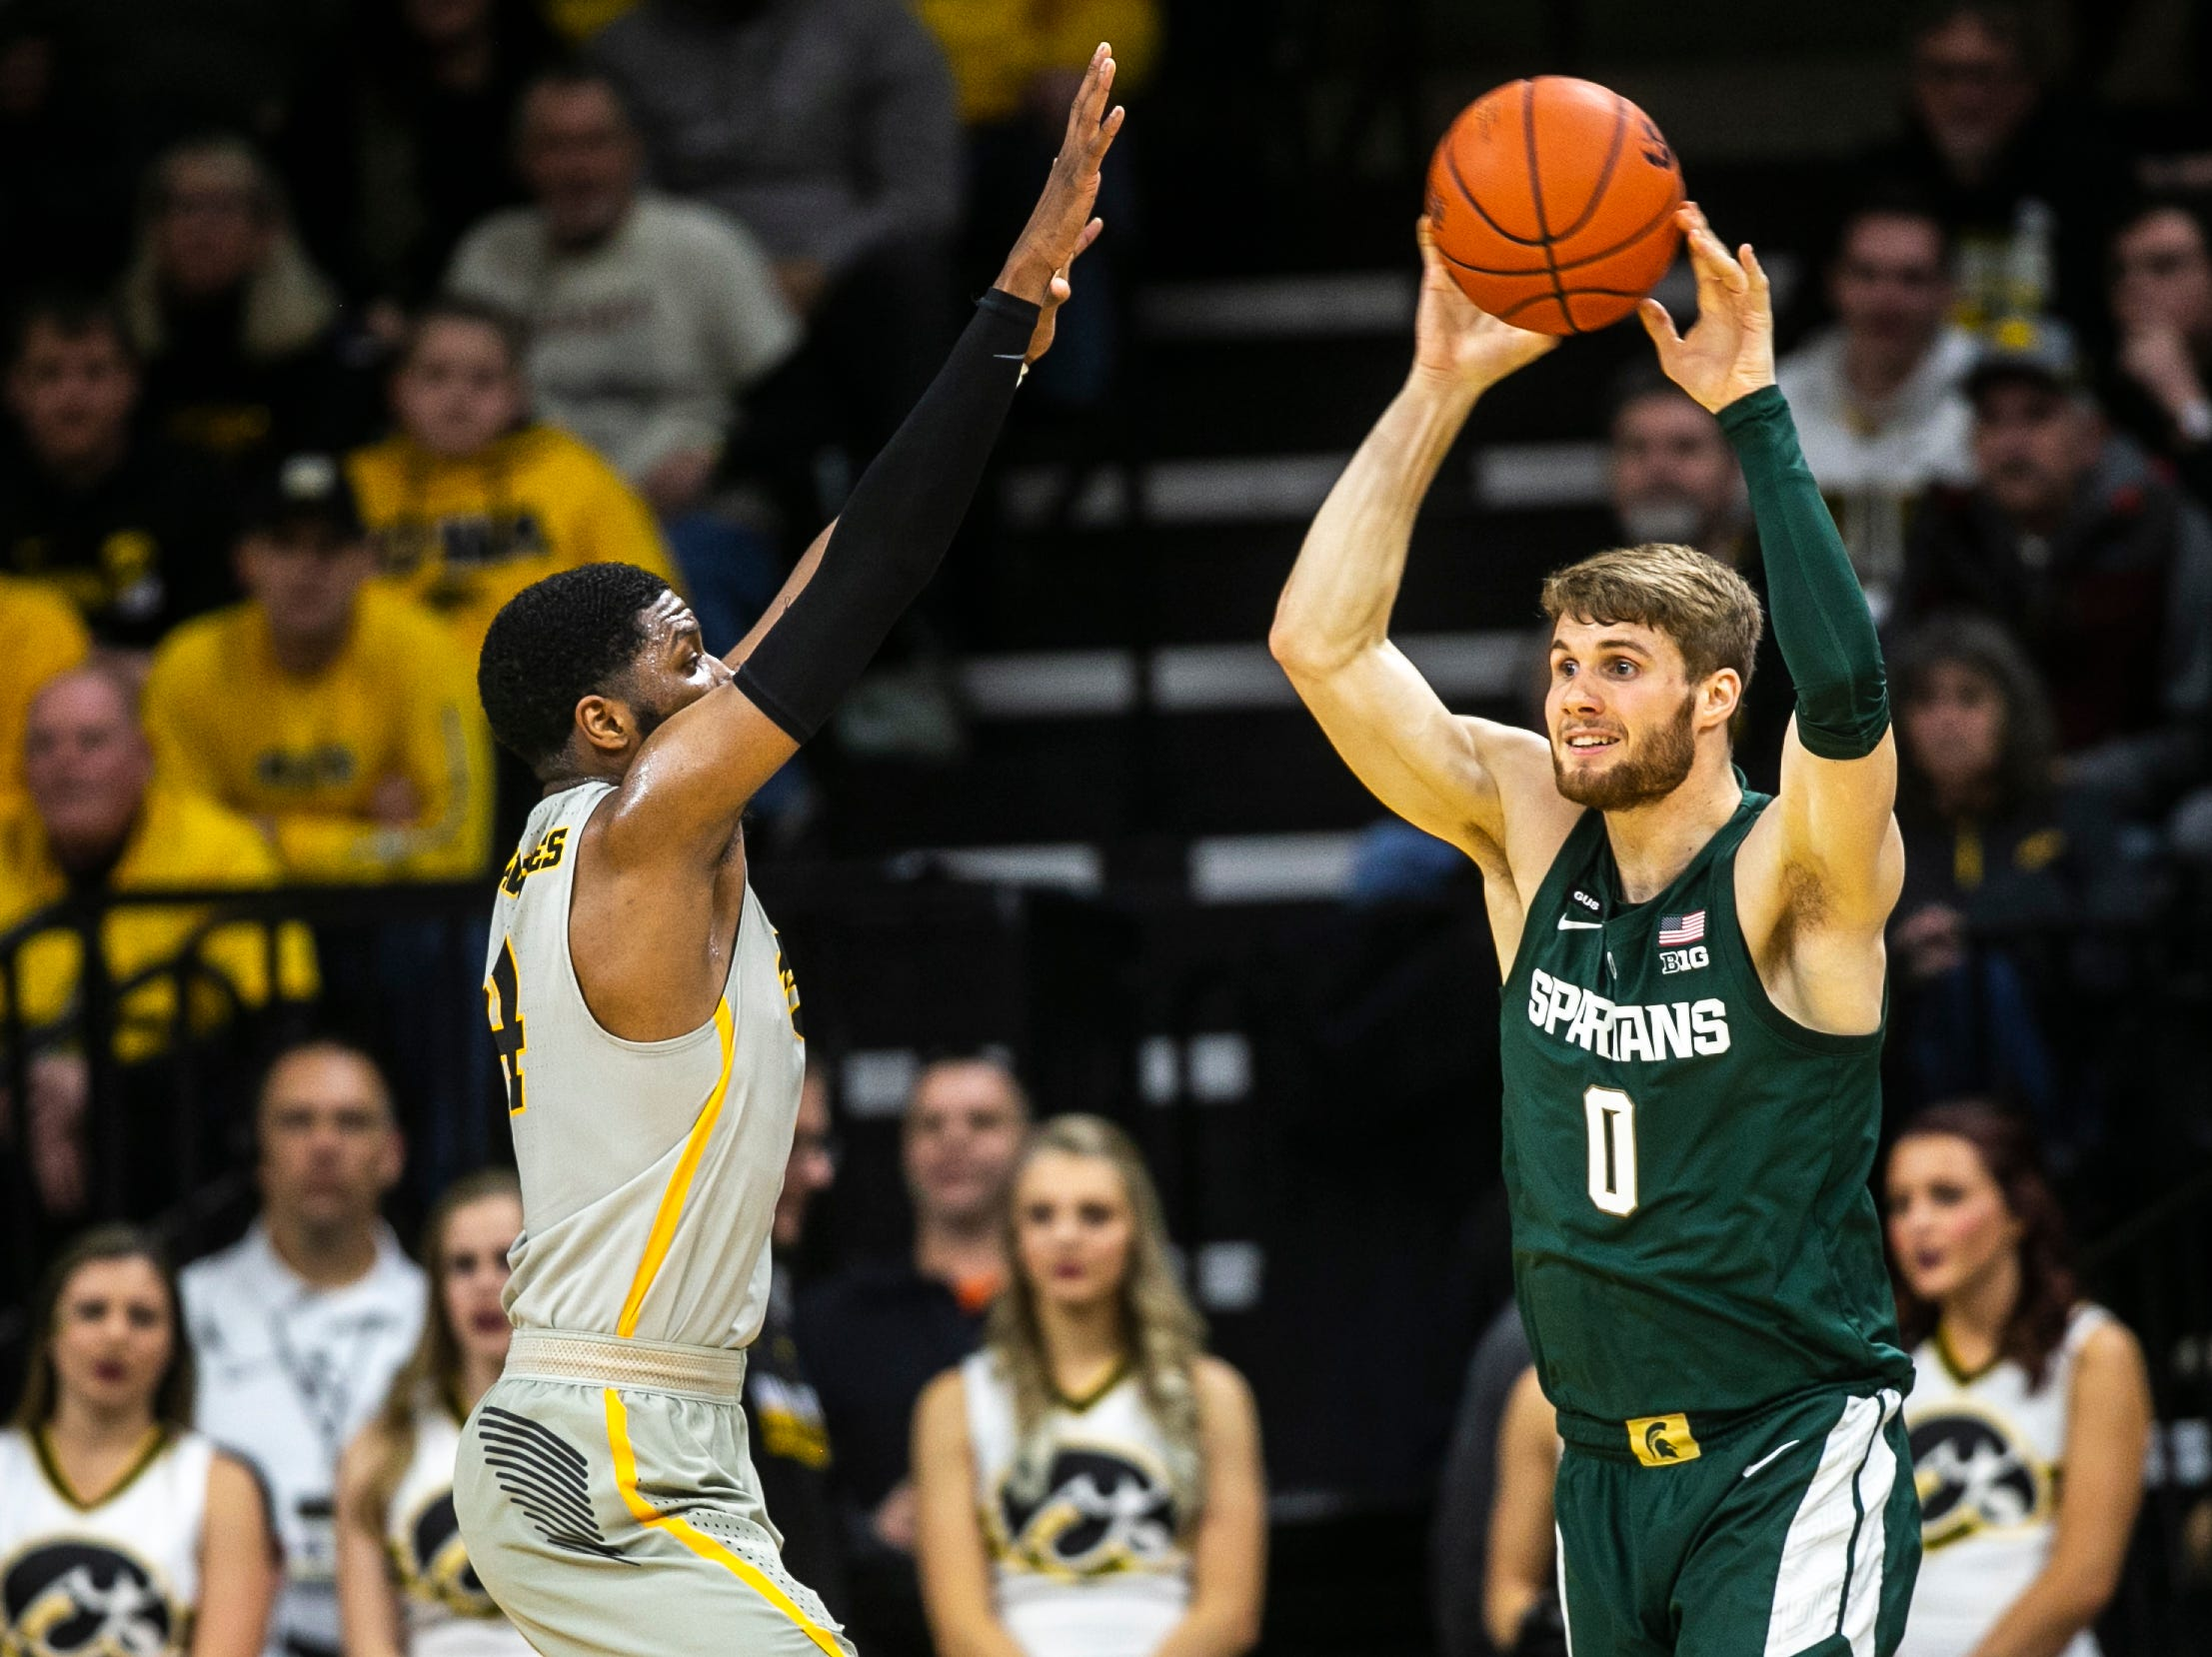 Iowa guard Isaiah Moss (4) defends Michigan State's Kyle Ahrens (0) during a NCAA Big Ten Conference men's basketball game on Thursday, Jan. 24, 2019, at Carver-Hawkeye Arena in Iowa City, Iowa.